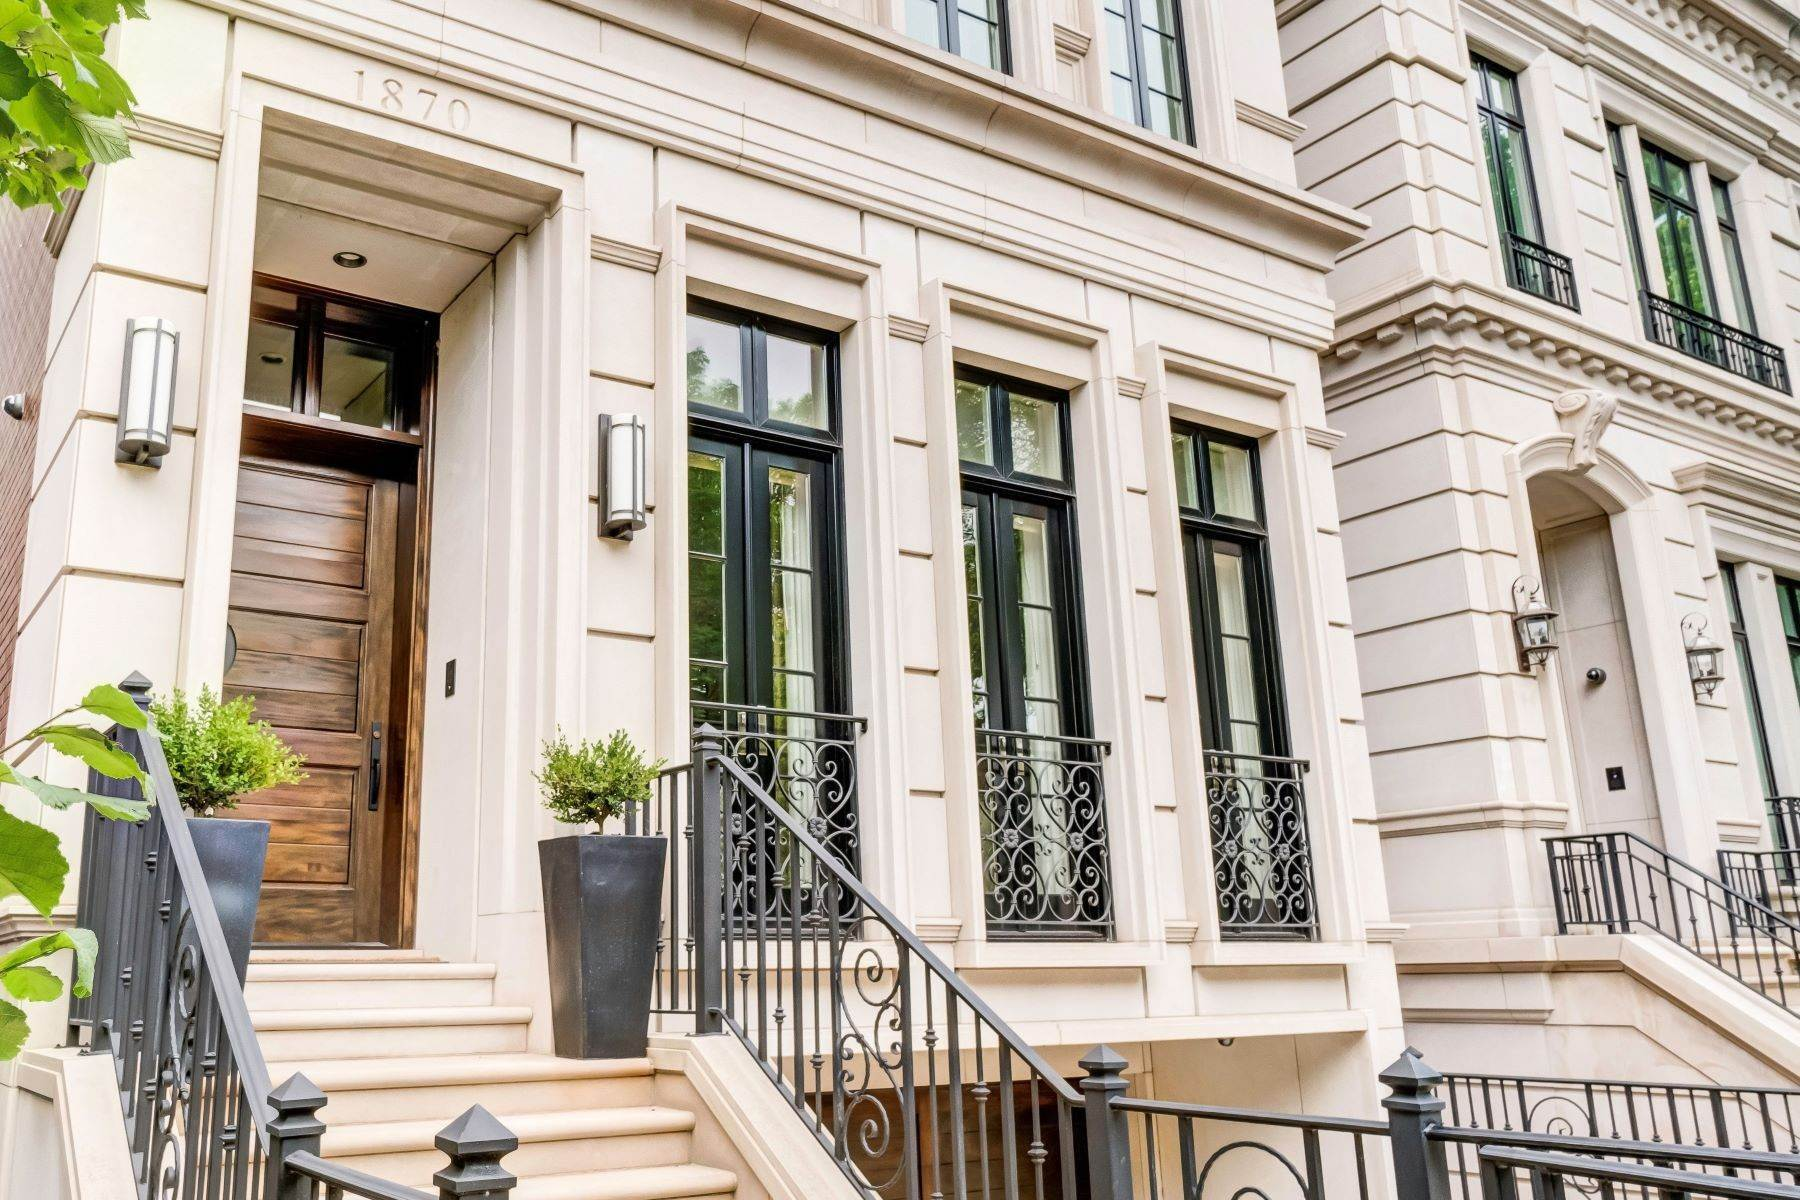 Property for Sale at Elegant Lincoln Park Home 1870 N Orchard Street Chicago, Illinois 60614 United States